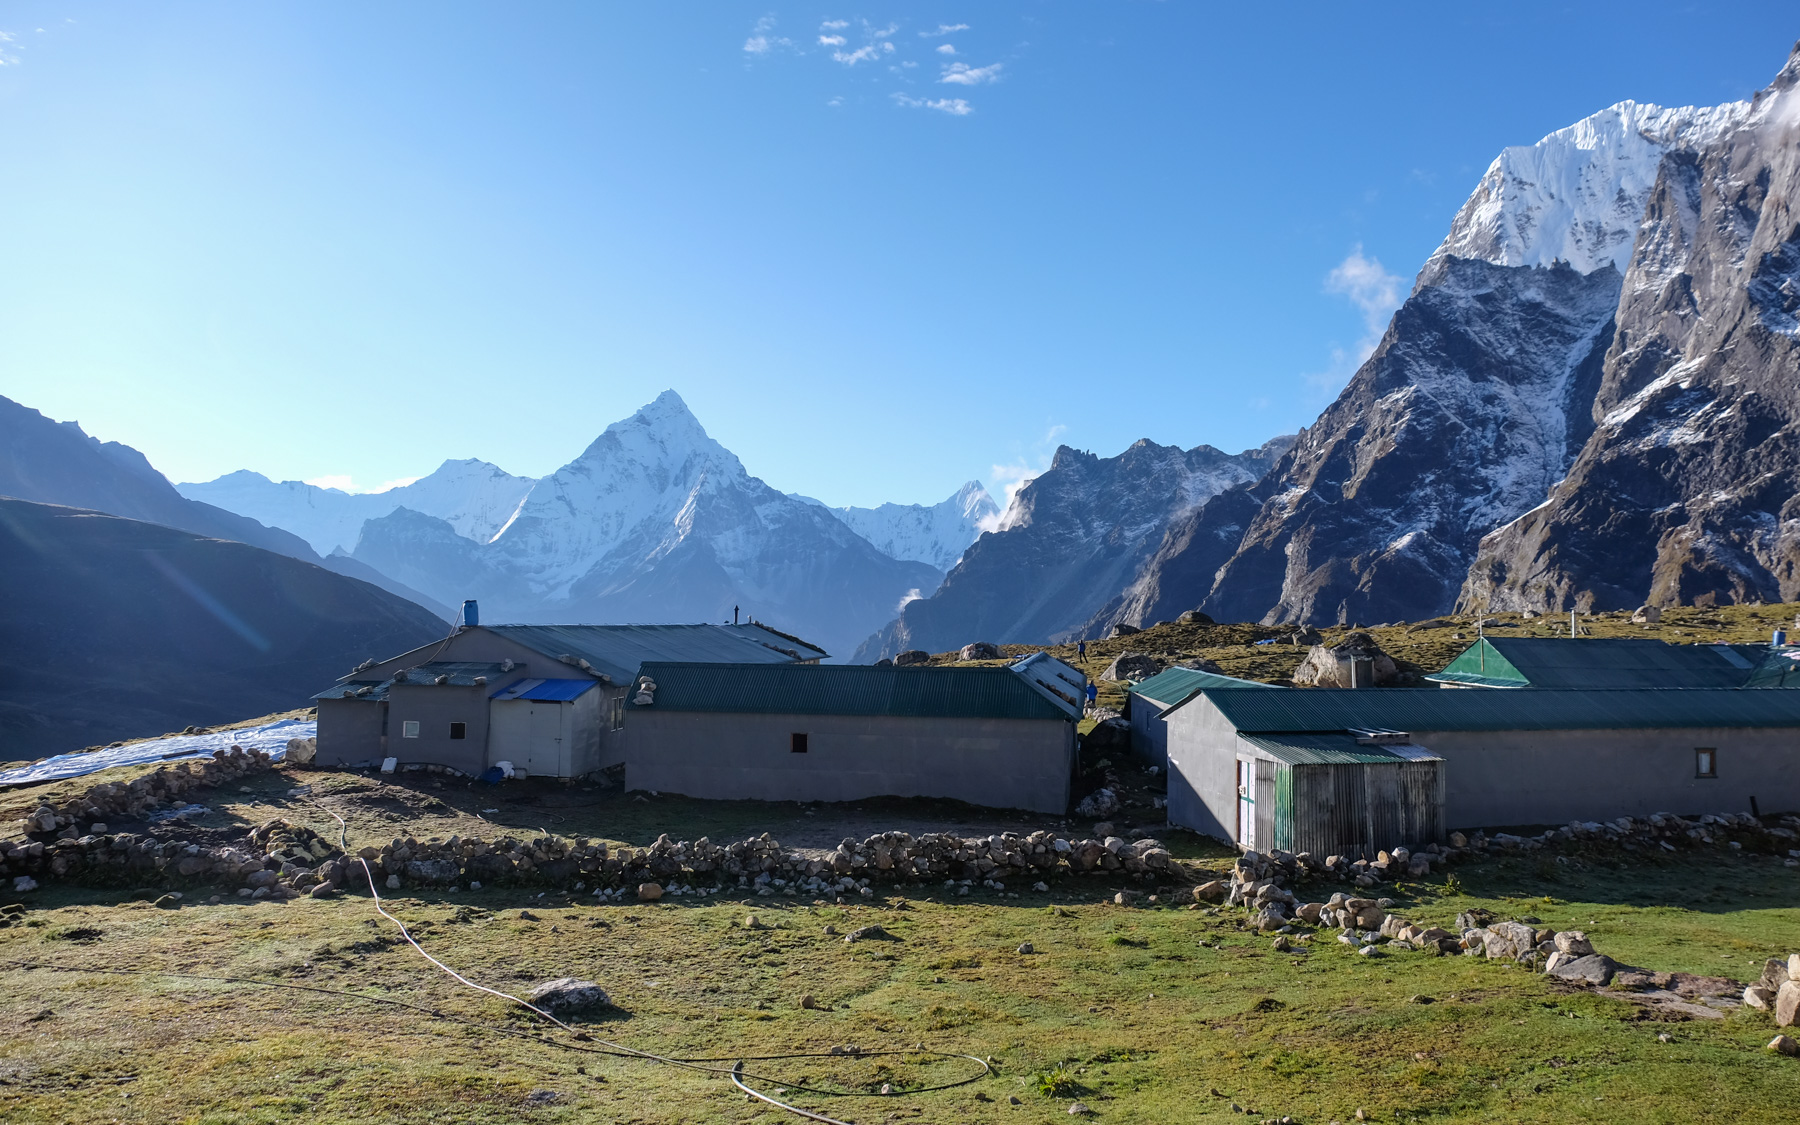 Kala Patthar & Gokyo, Everest 3 pass #3 39